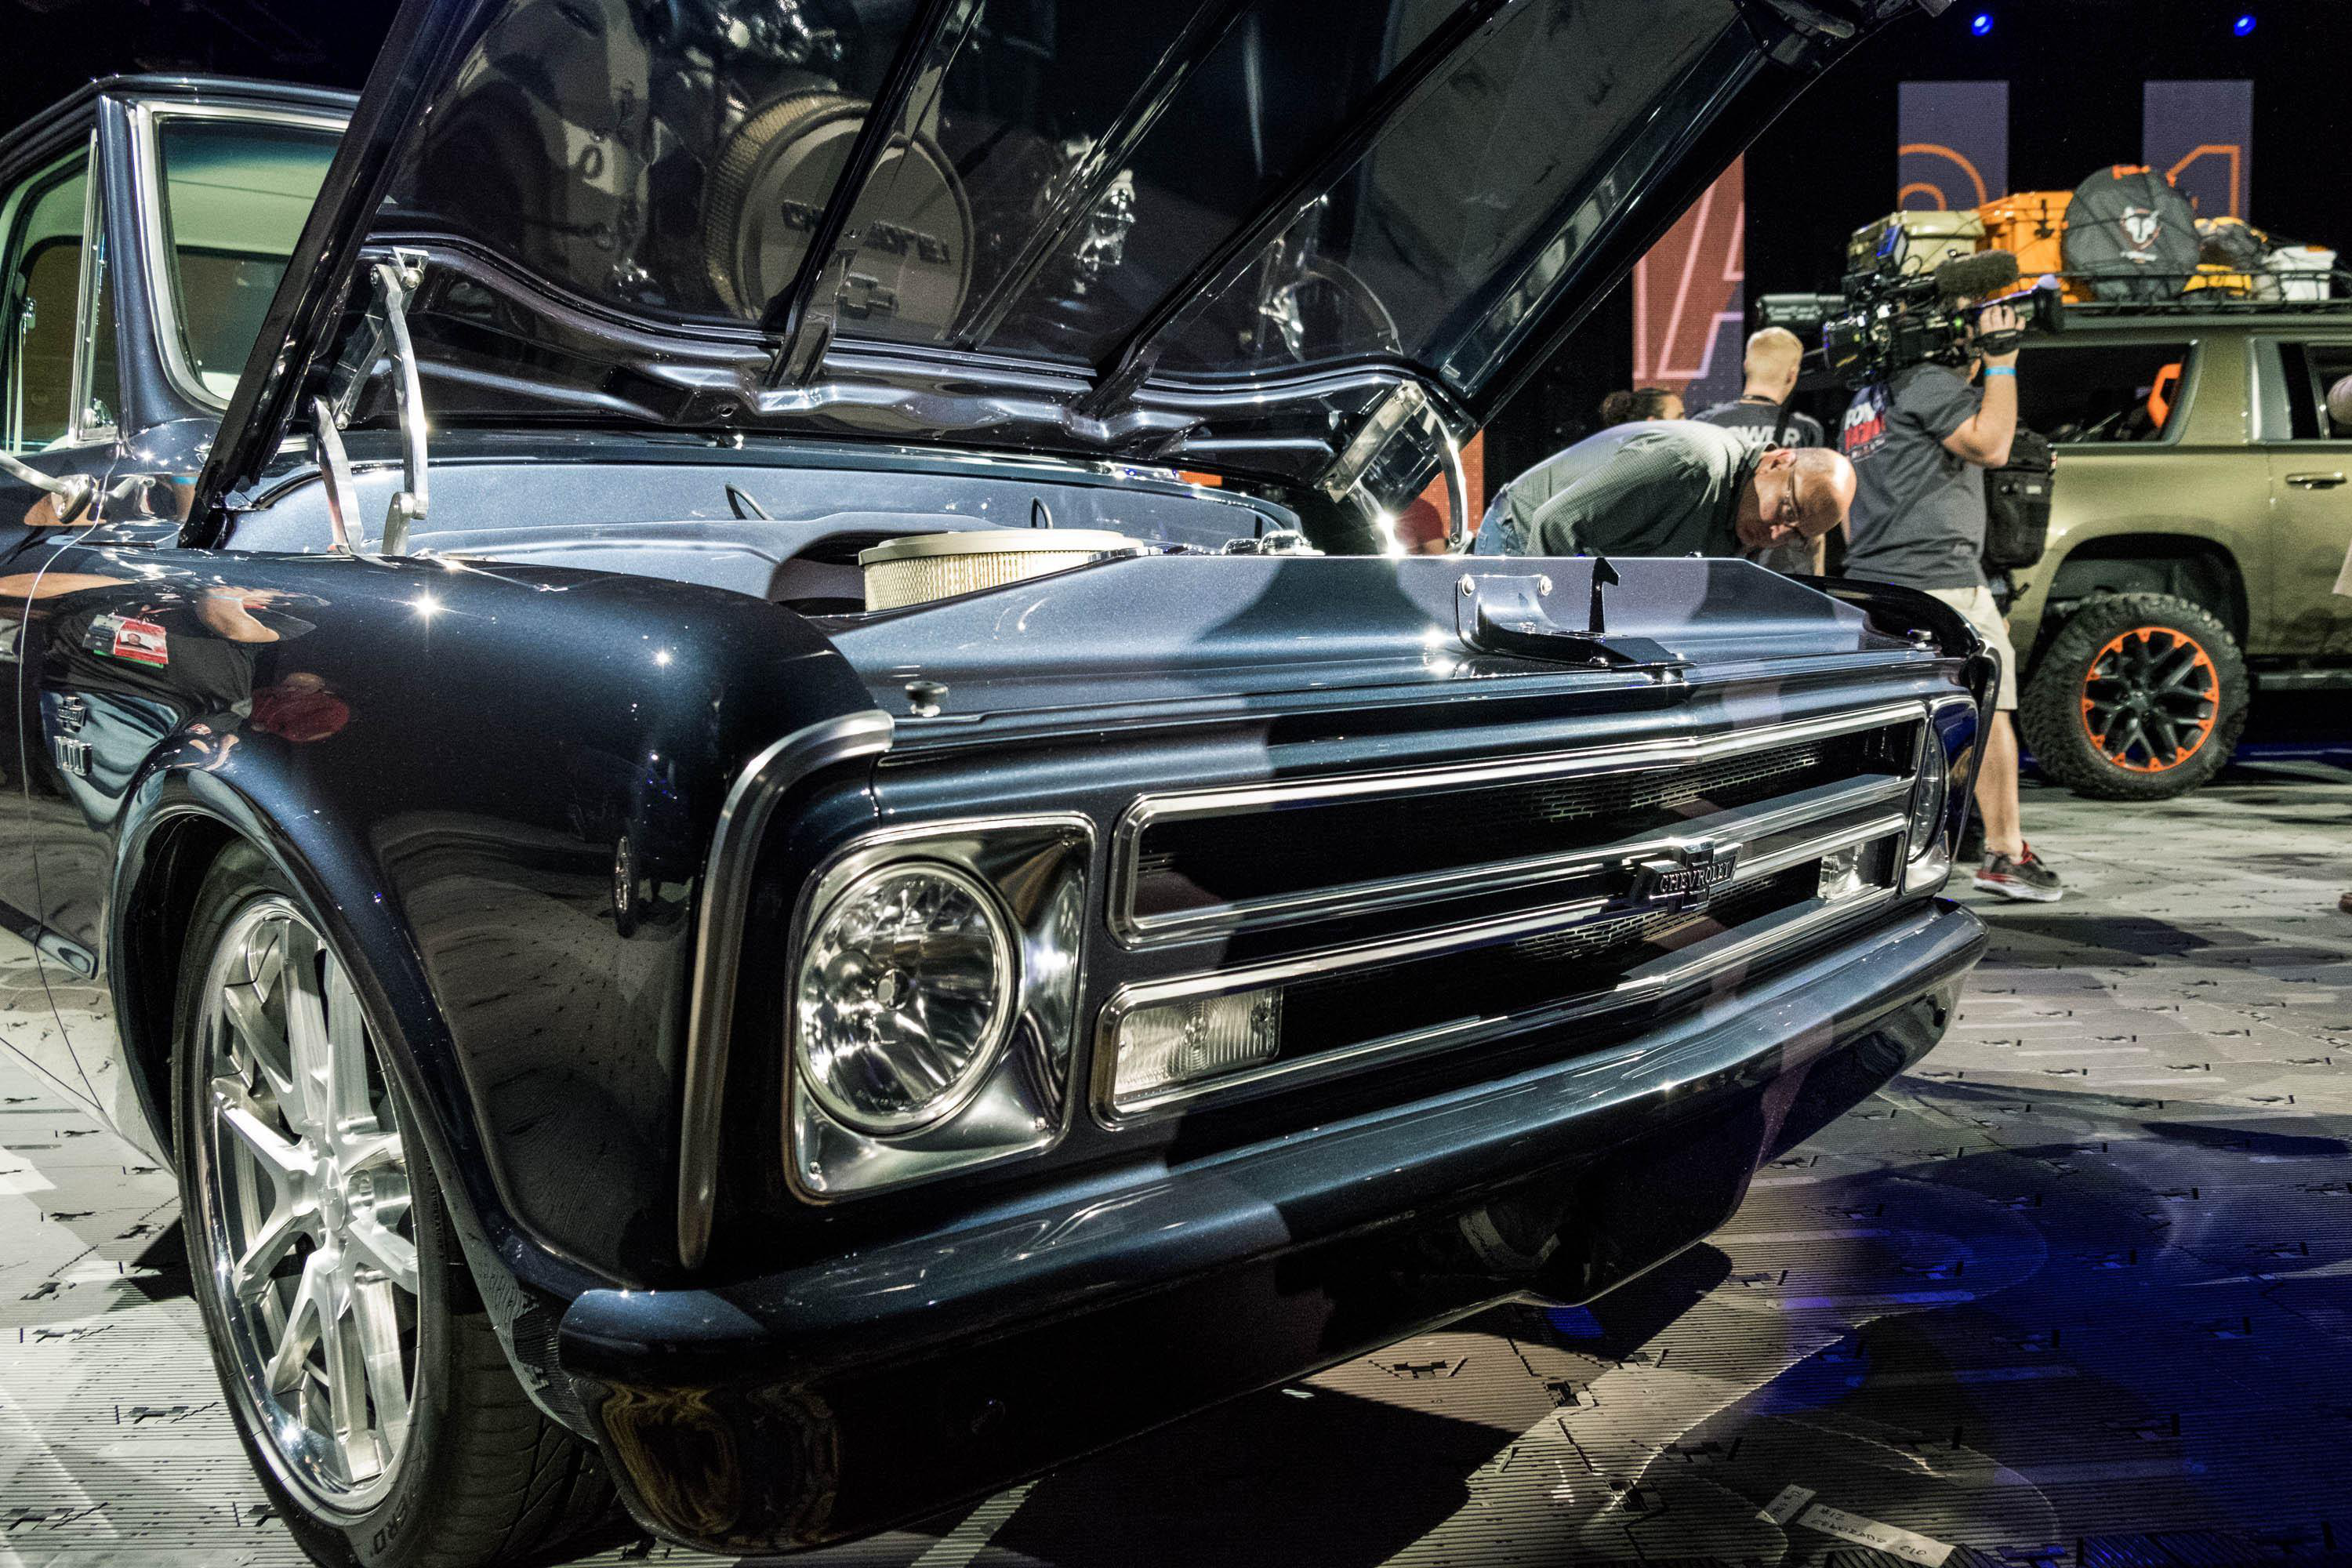 Grill of Vintage Chevrolet Truck